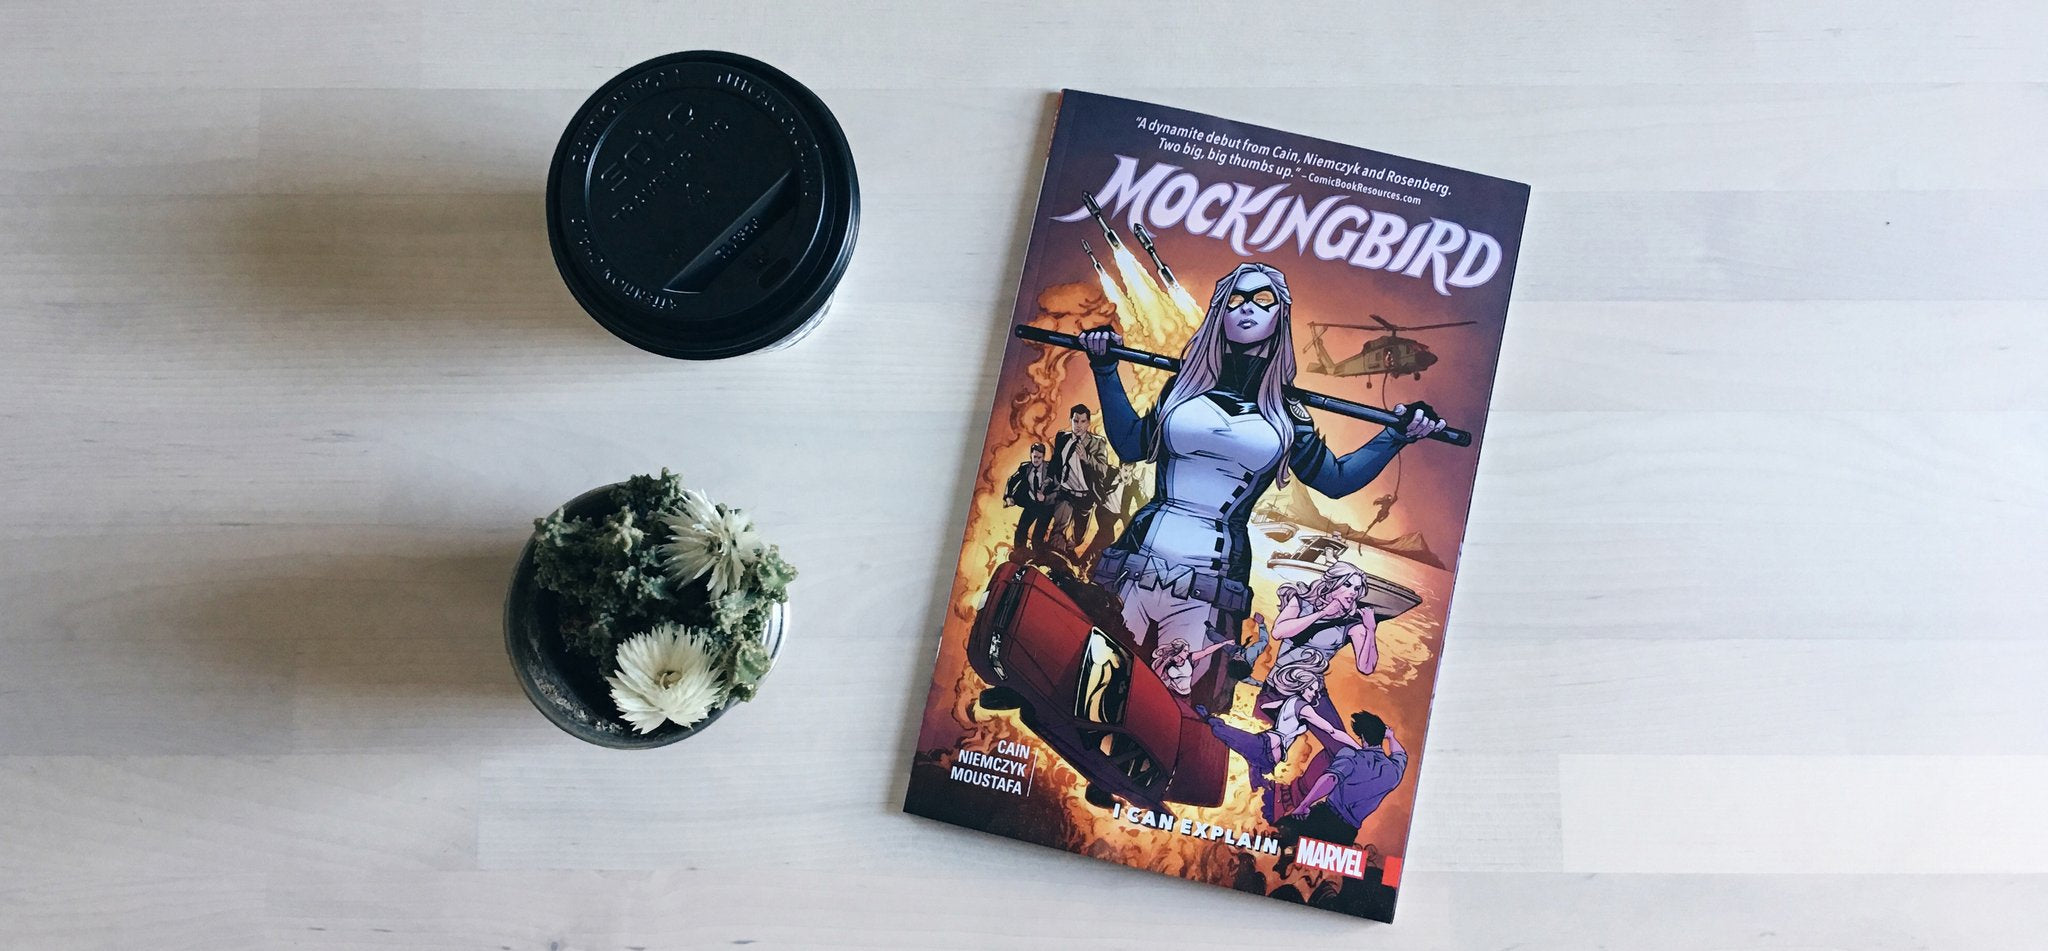 Coffee Break: Mockingbird